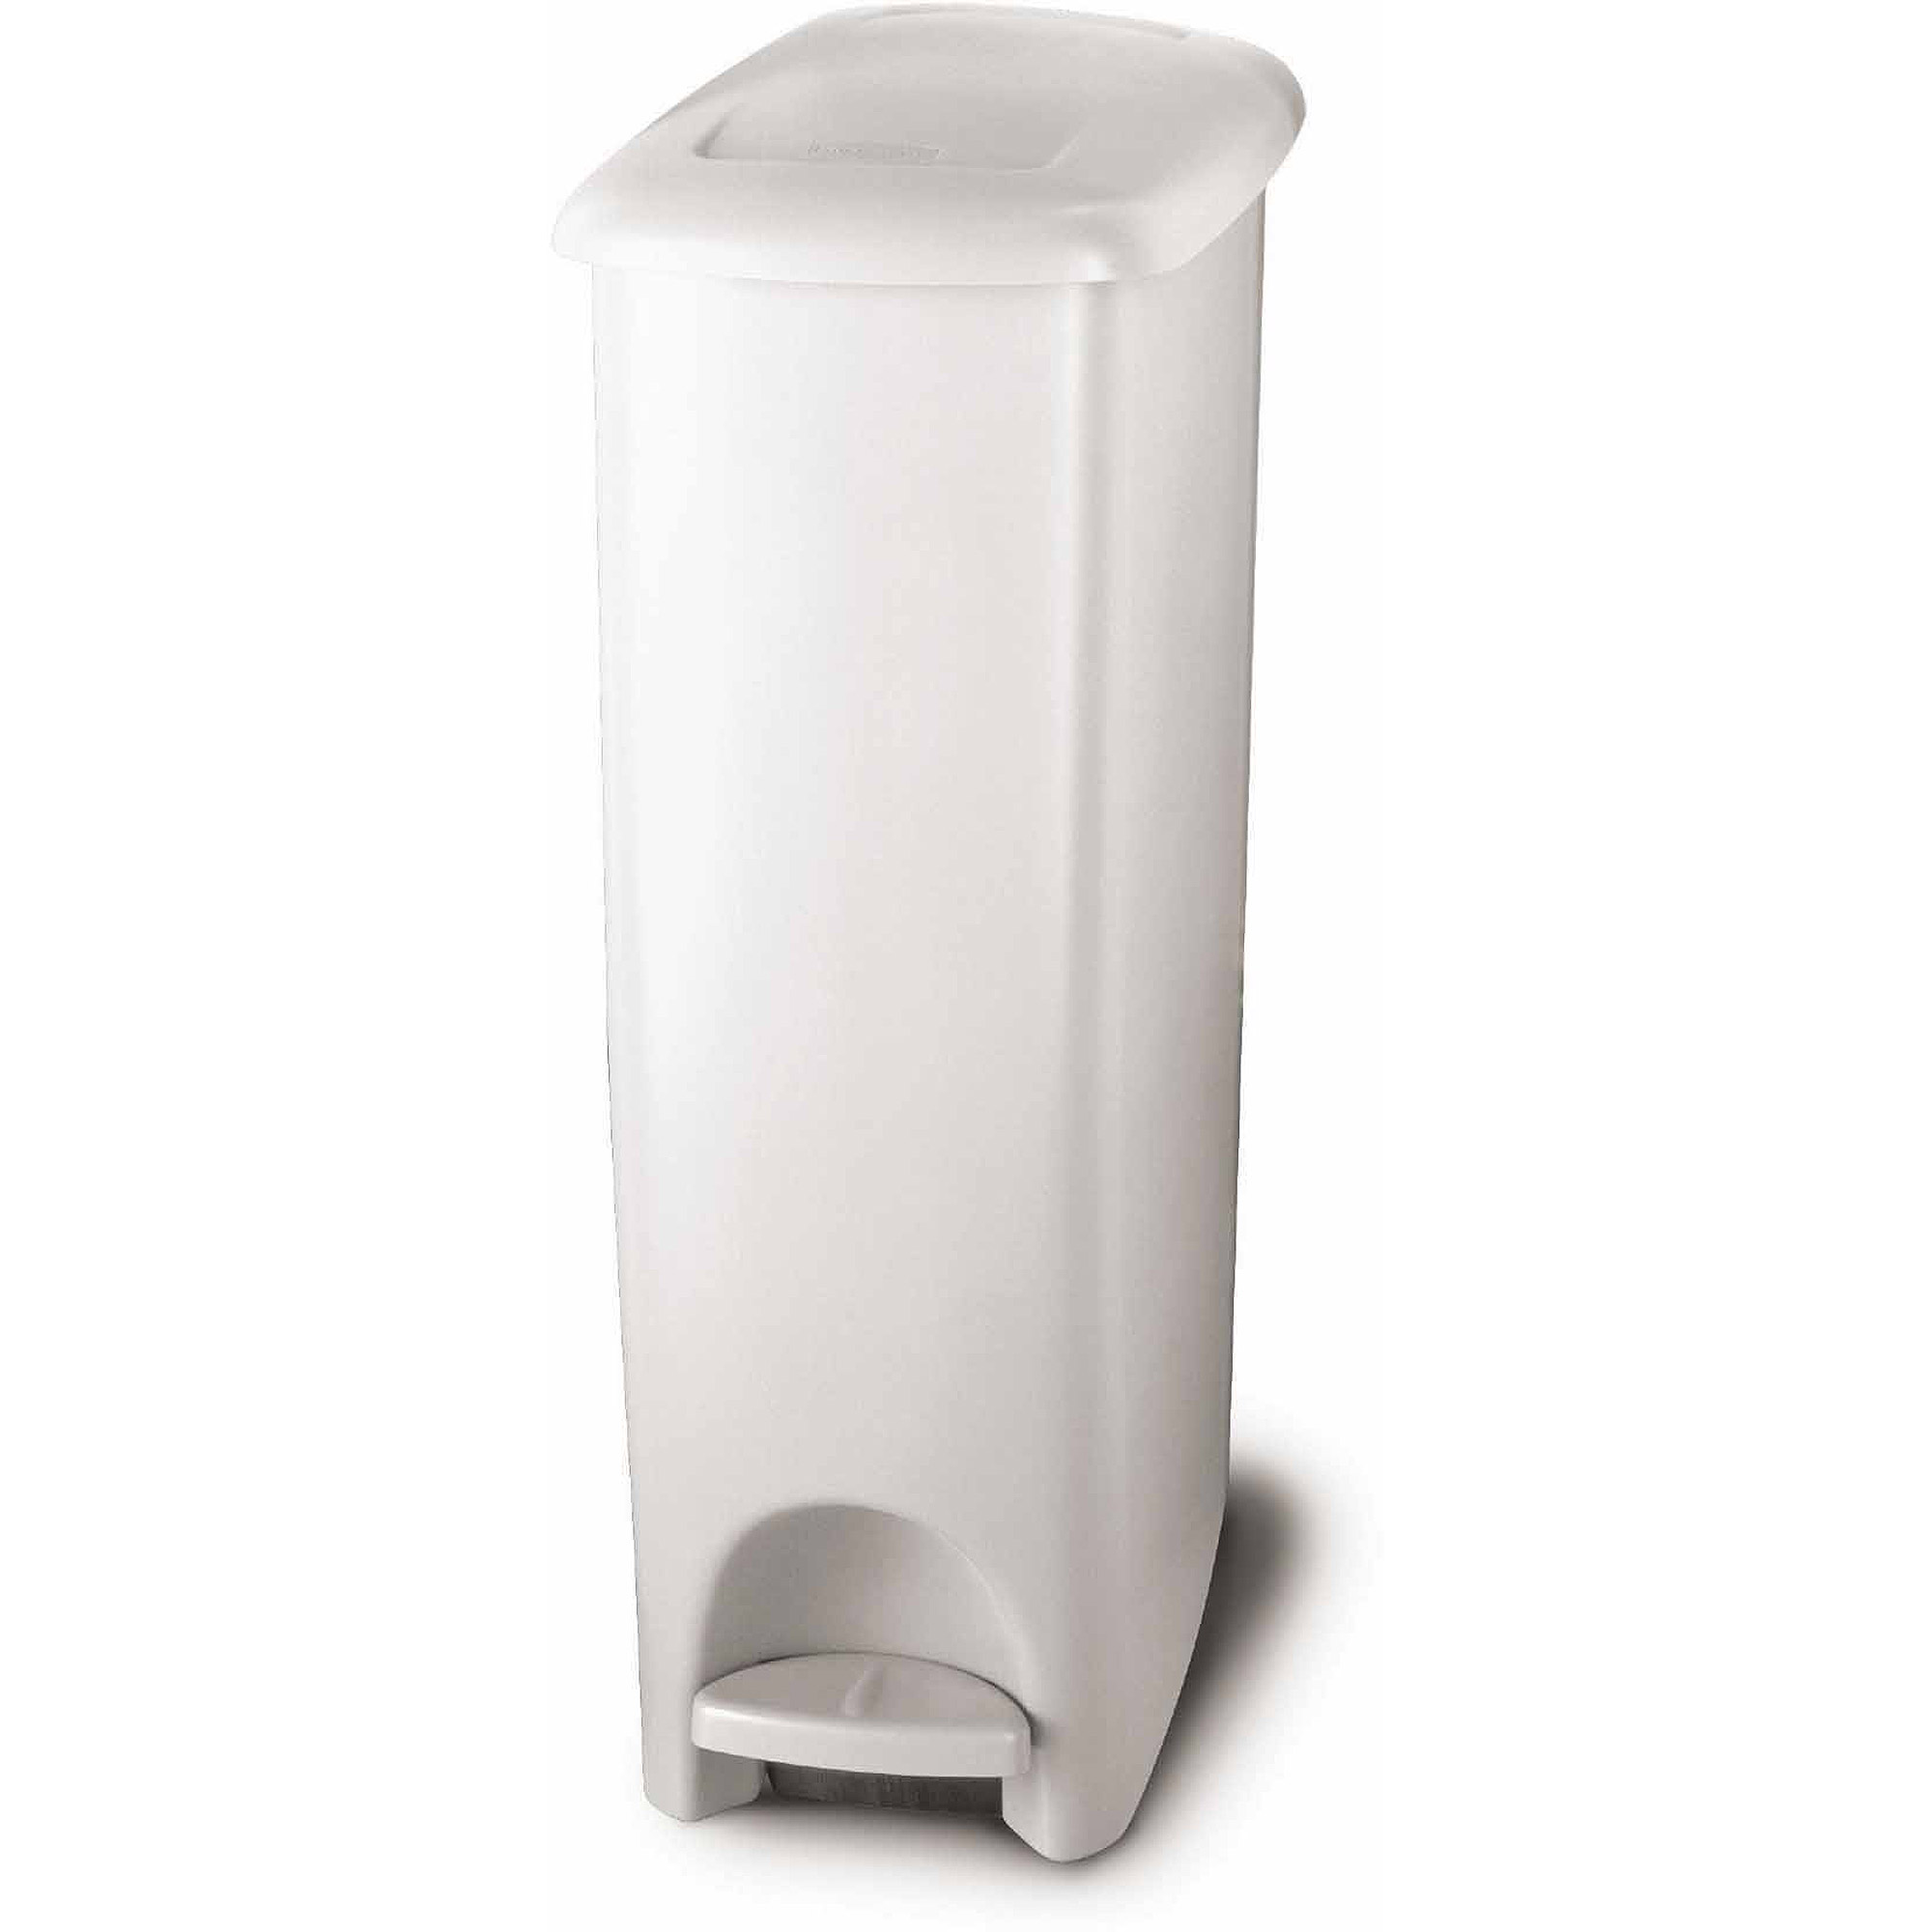 Rubbermaid Step-On Slim Fit Trash Can, 11.25 Gal, White - Walmart.com